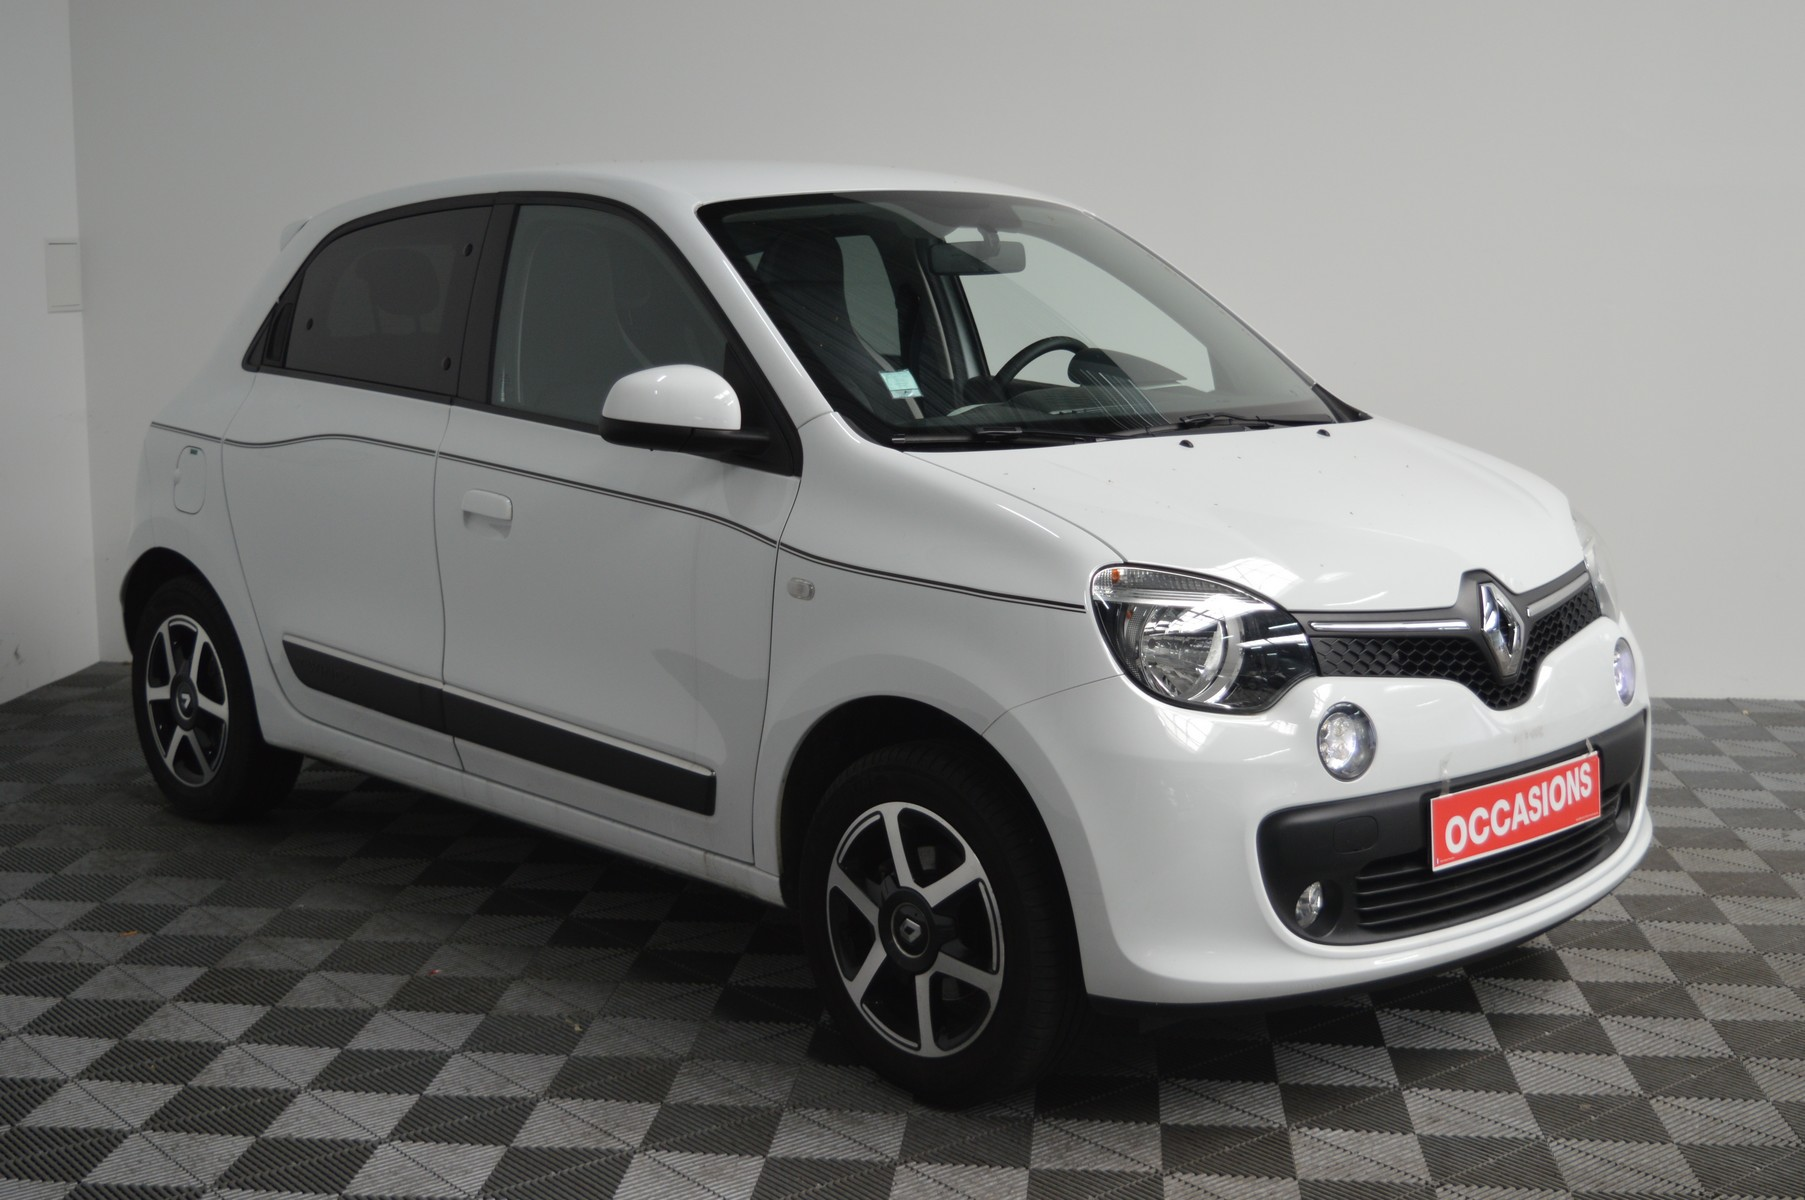 RENAULT TWINGO III 2019 à 9400 € - Photo n°2